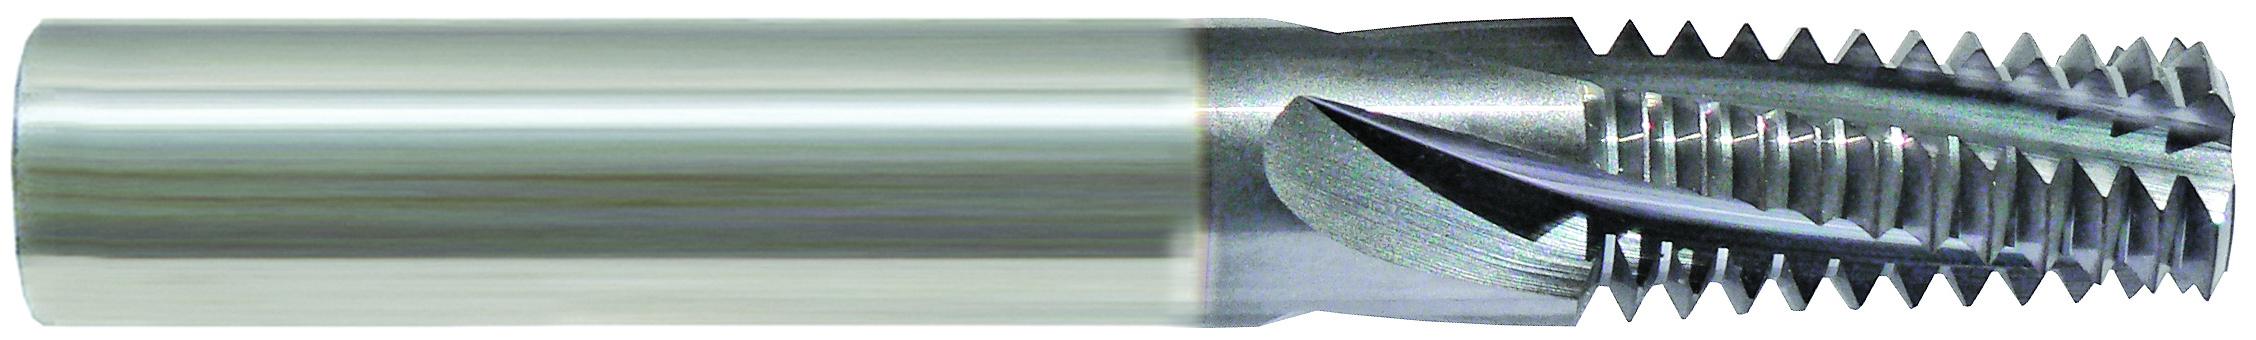 M18-2.50 MC SOLID CARBIDE THREAD MILL